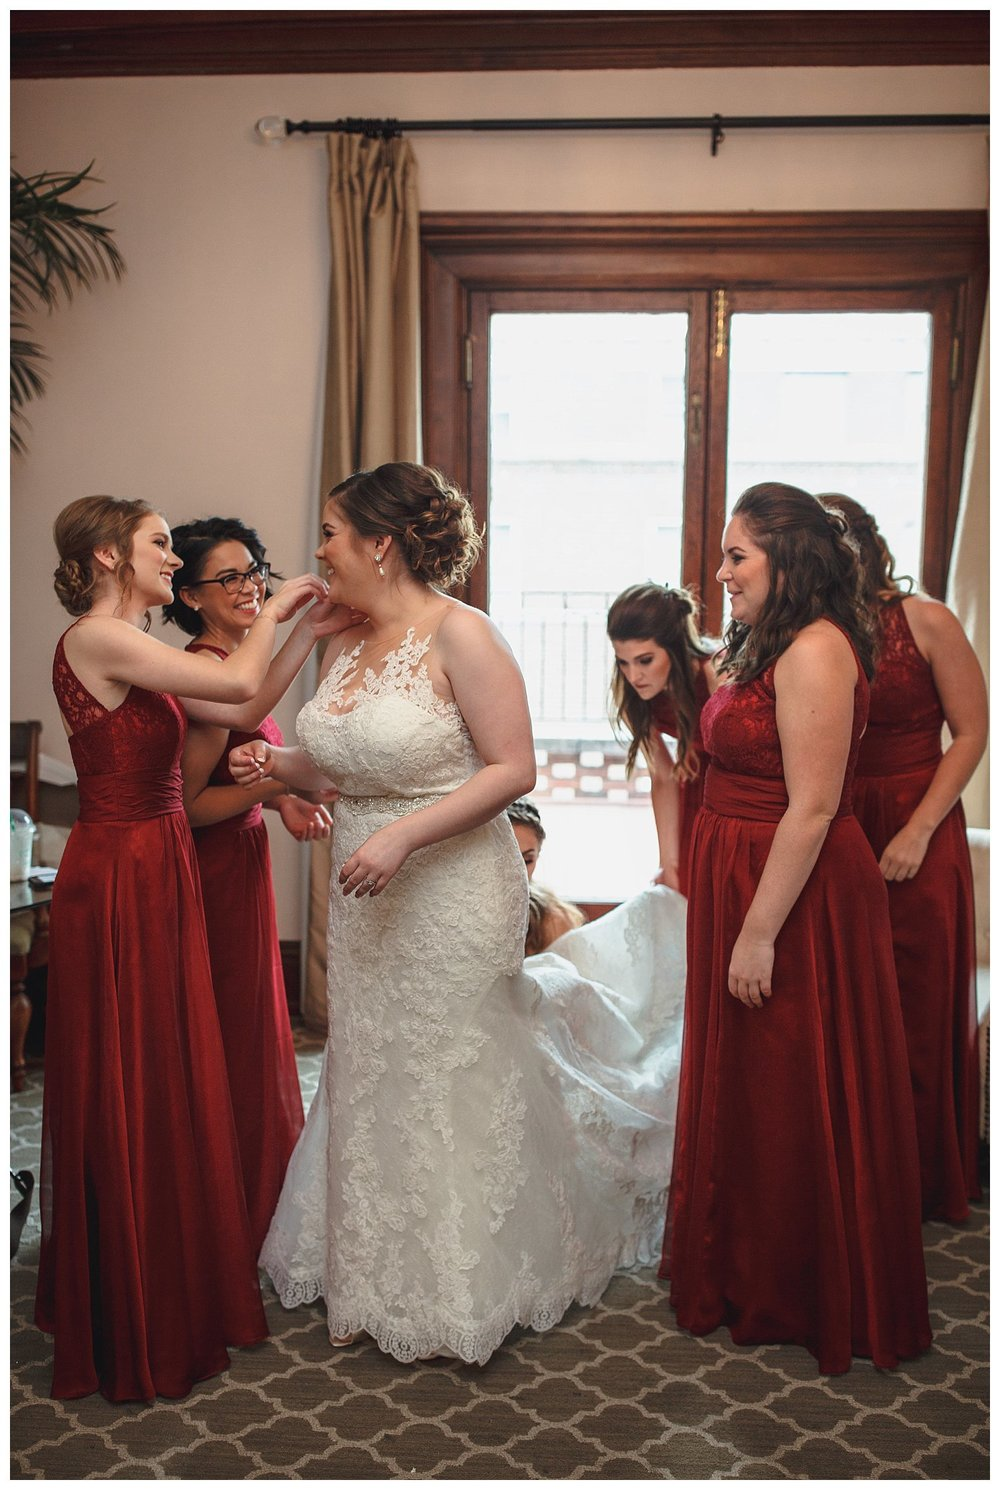 Kelsey_Diane_Photography_Loose_Mansion_Wedding_Photography_Kansas_City_Victor_Lyndsay_0118.jpg